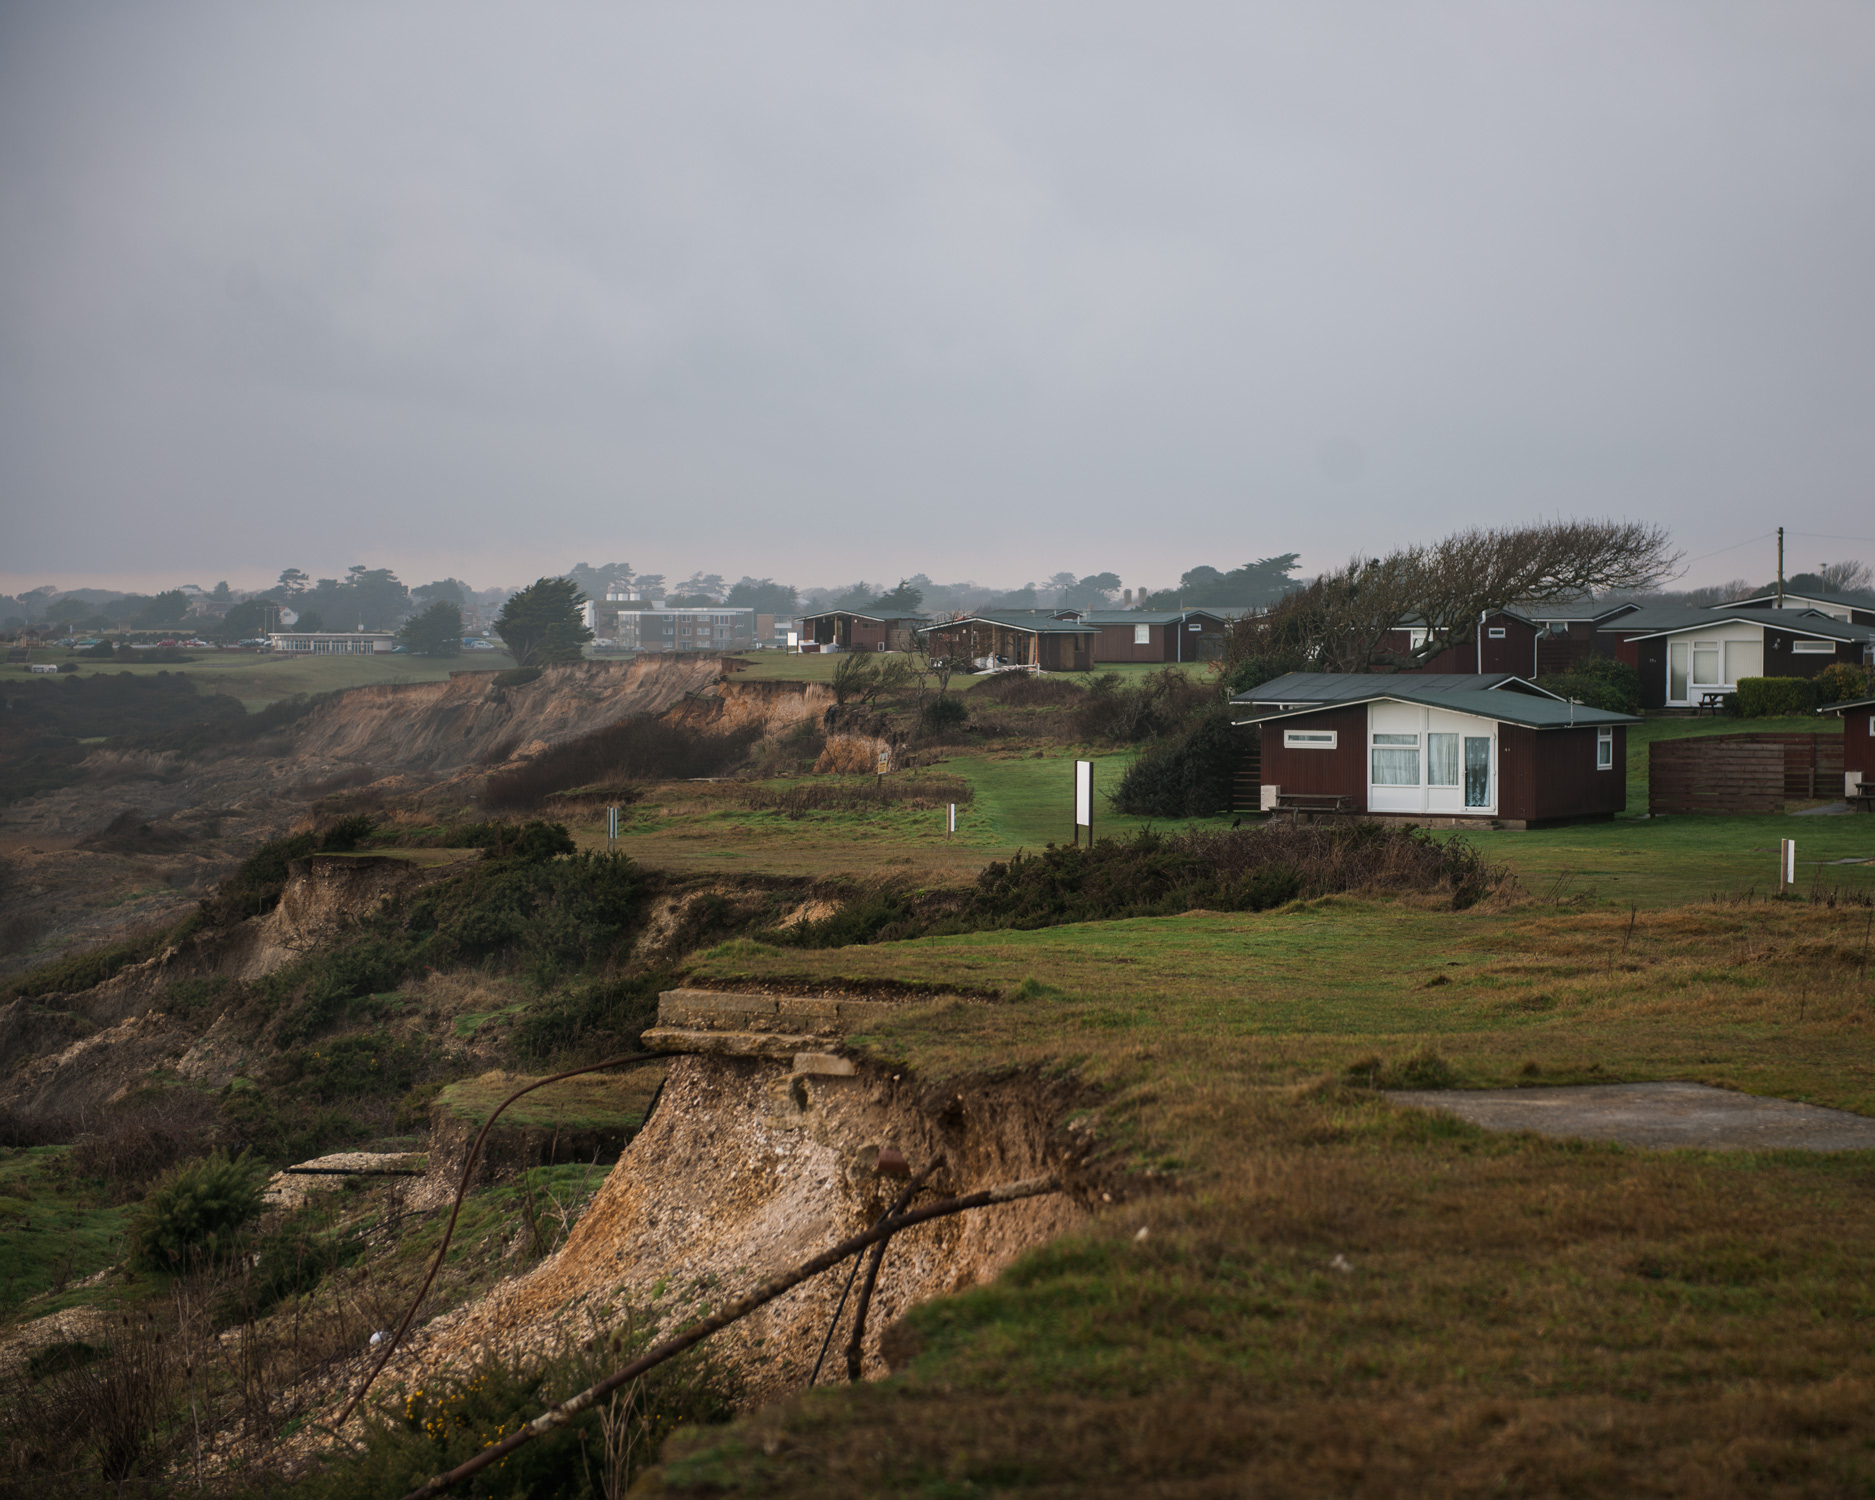 A holiday home park is battered by the prevailing easterly wind in West Sussex. The park has already had to move a significant amount of the homes back from the edge of the cliff.